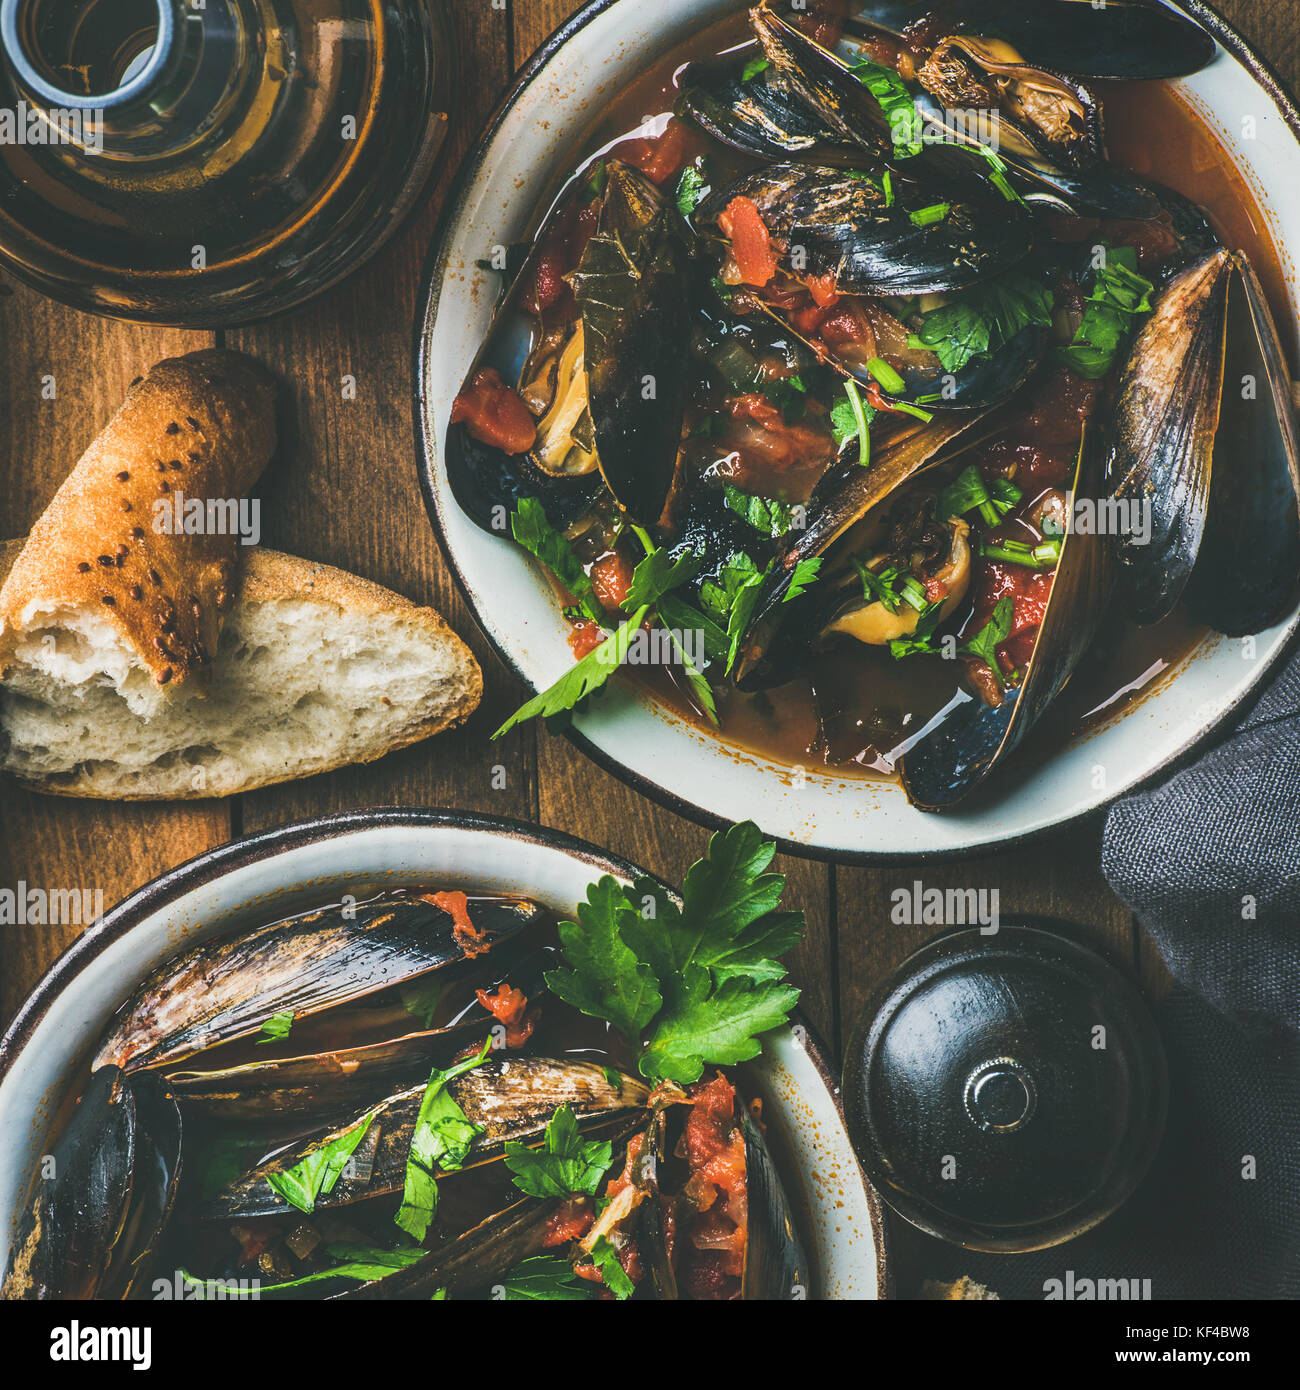 Belgian boiled mussels in tomato sauce with parsley, square crop - Stock Image